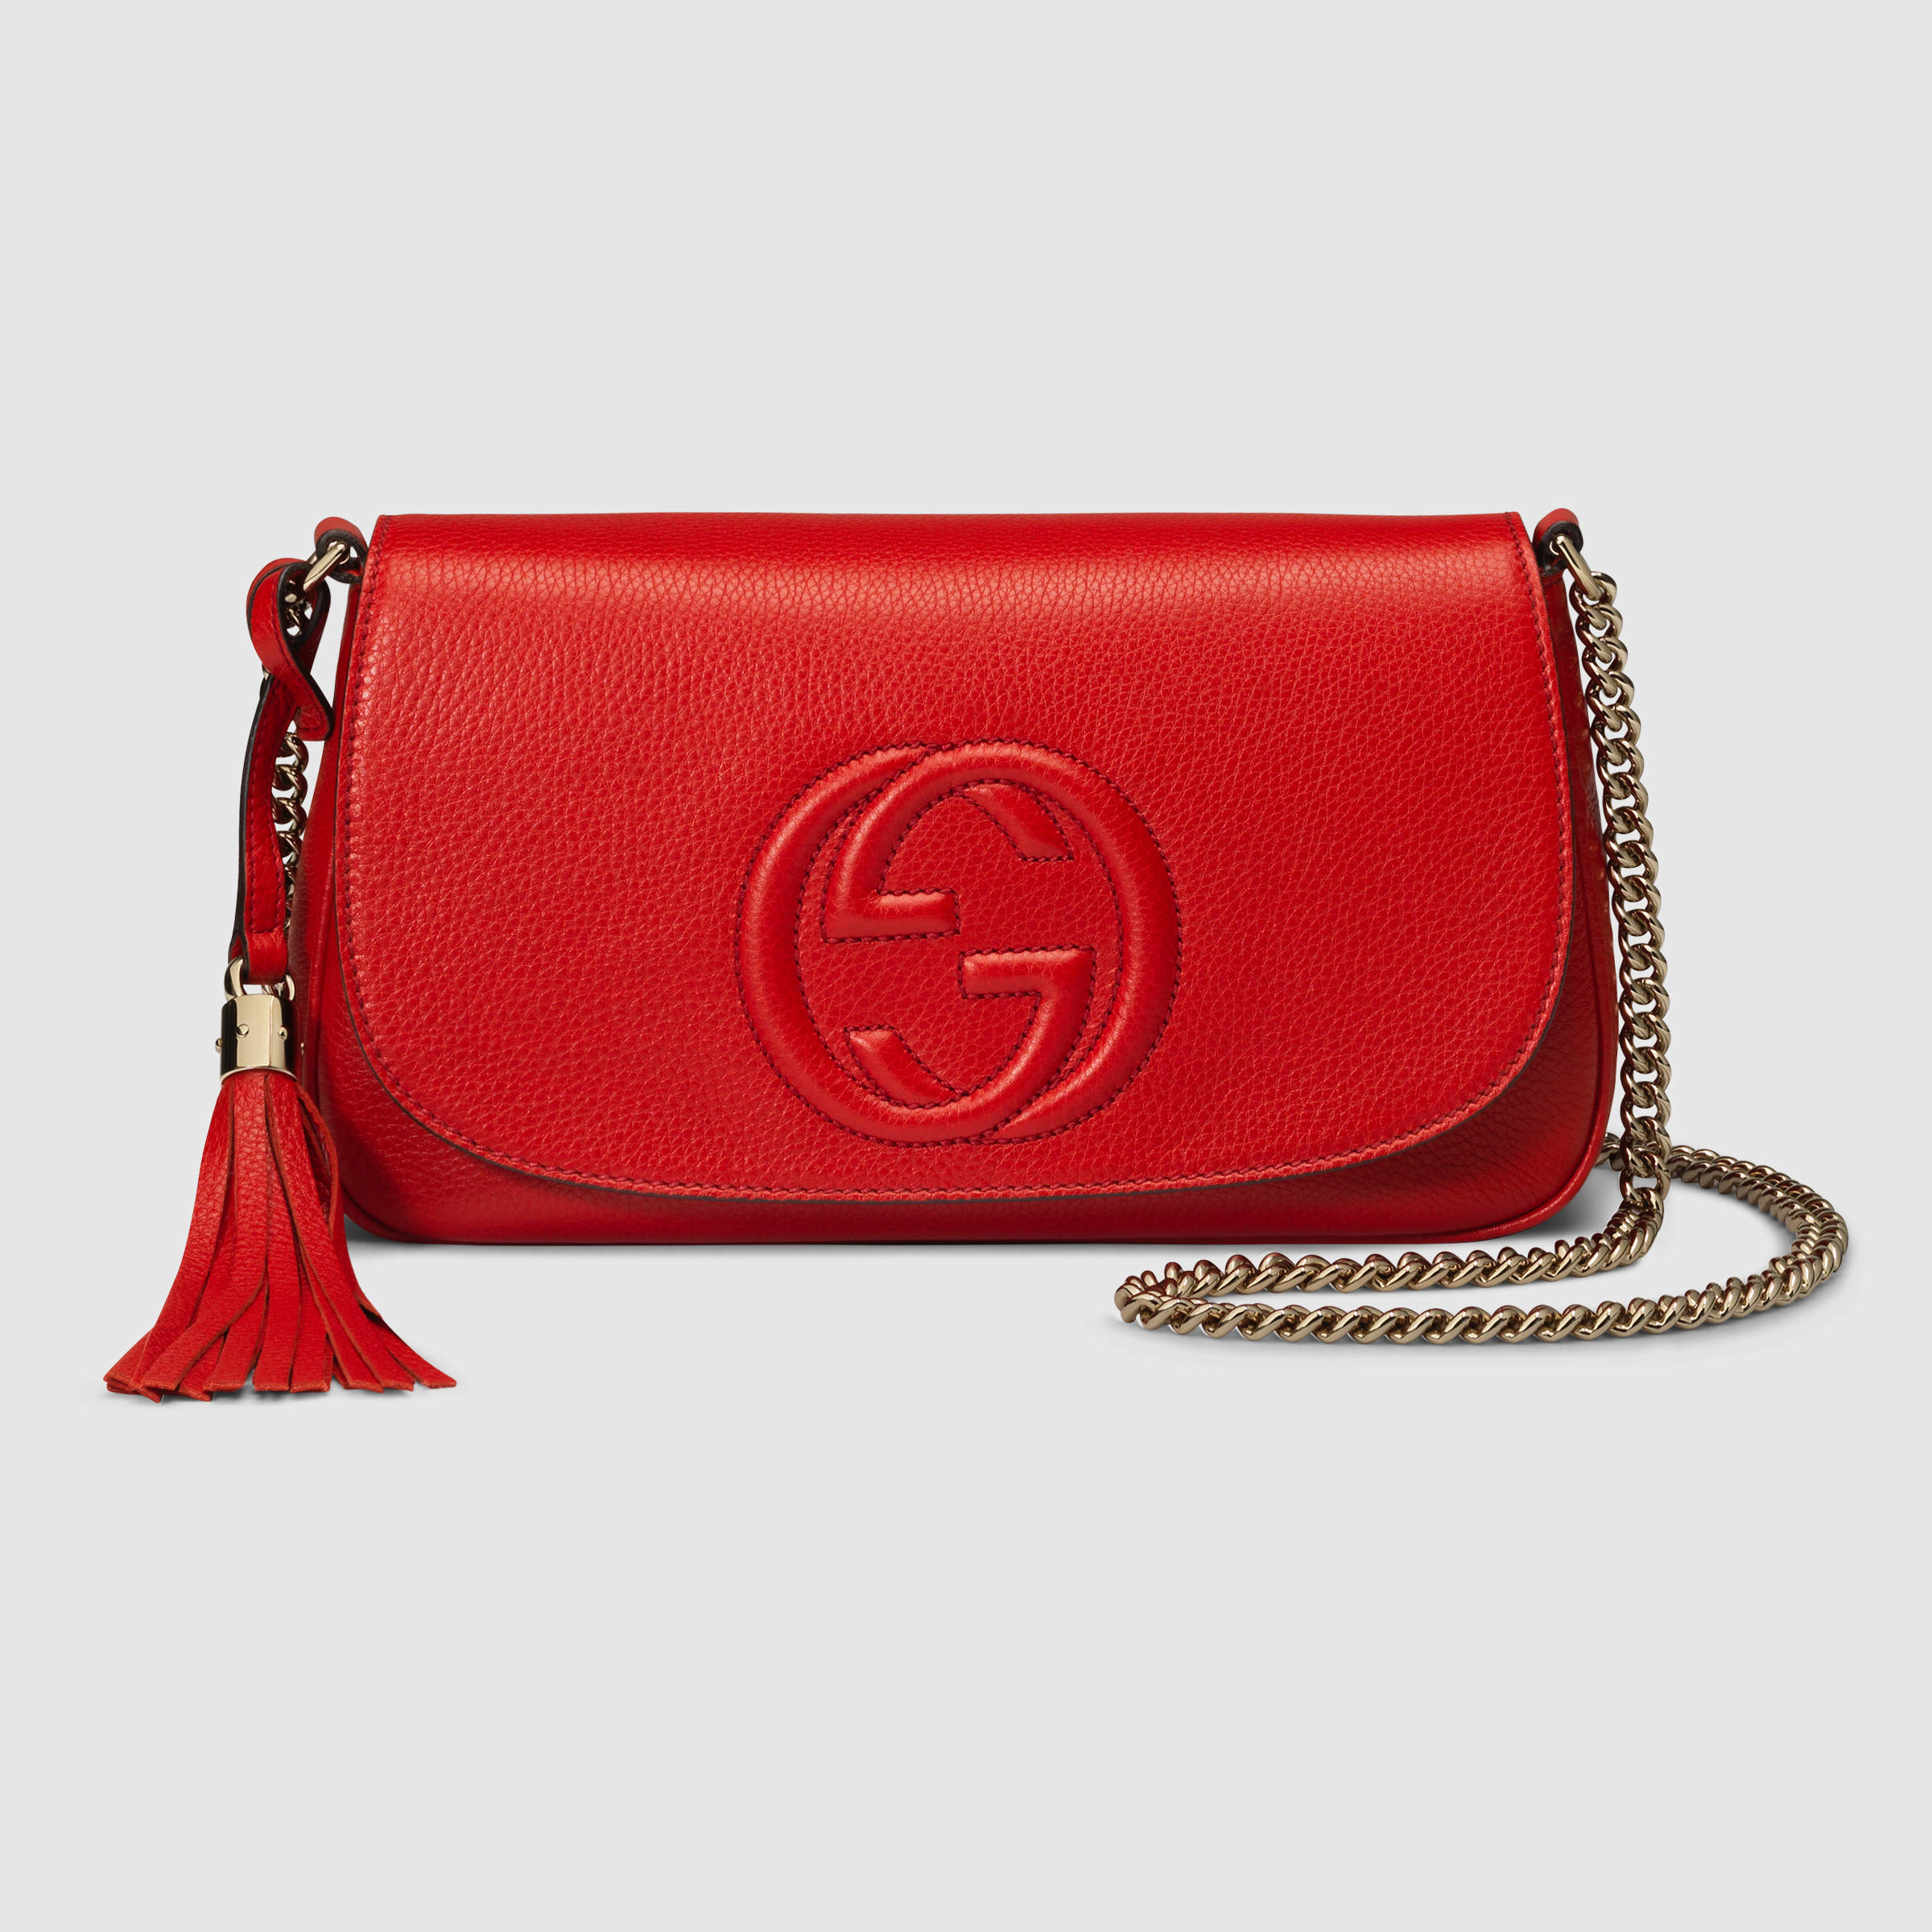 Lyst - Gucci Soho Leather Shoulder Bag in Red